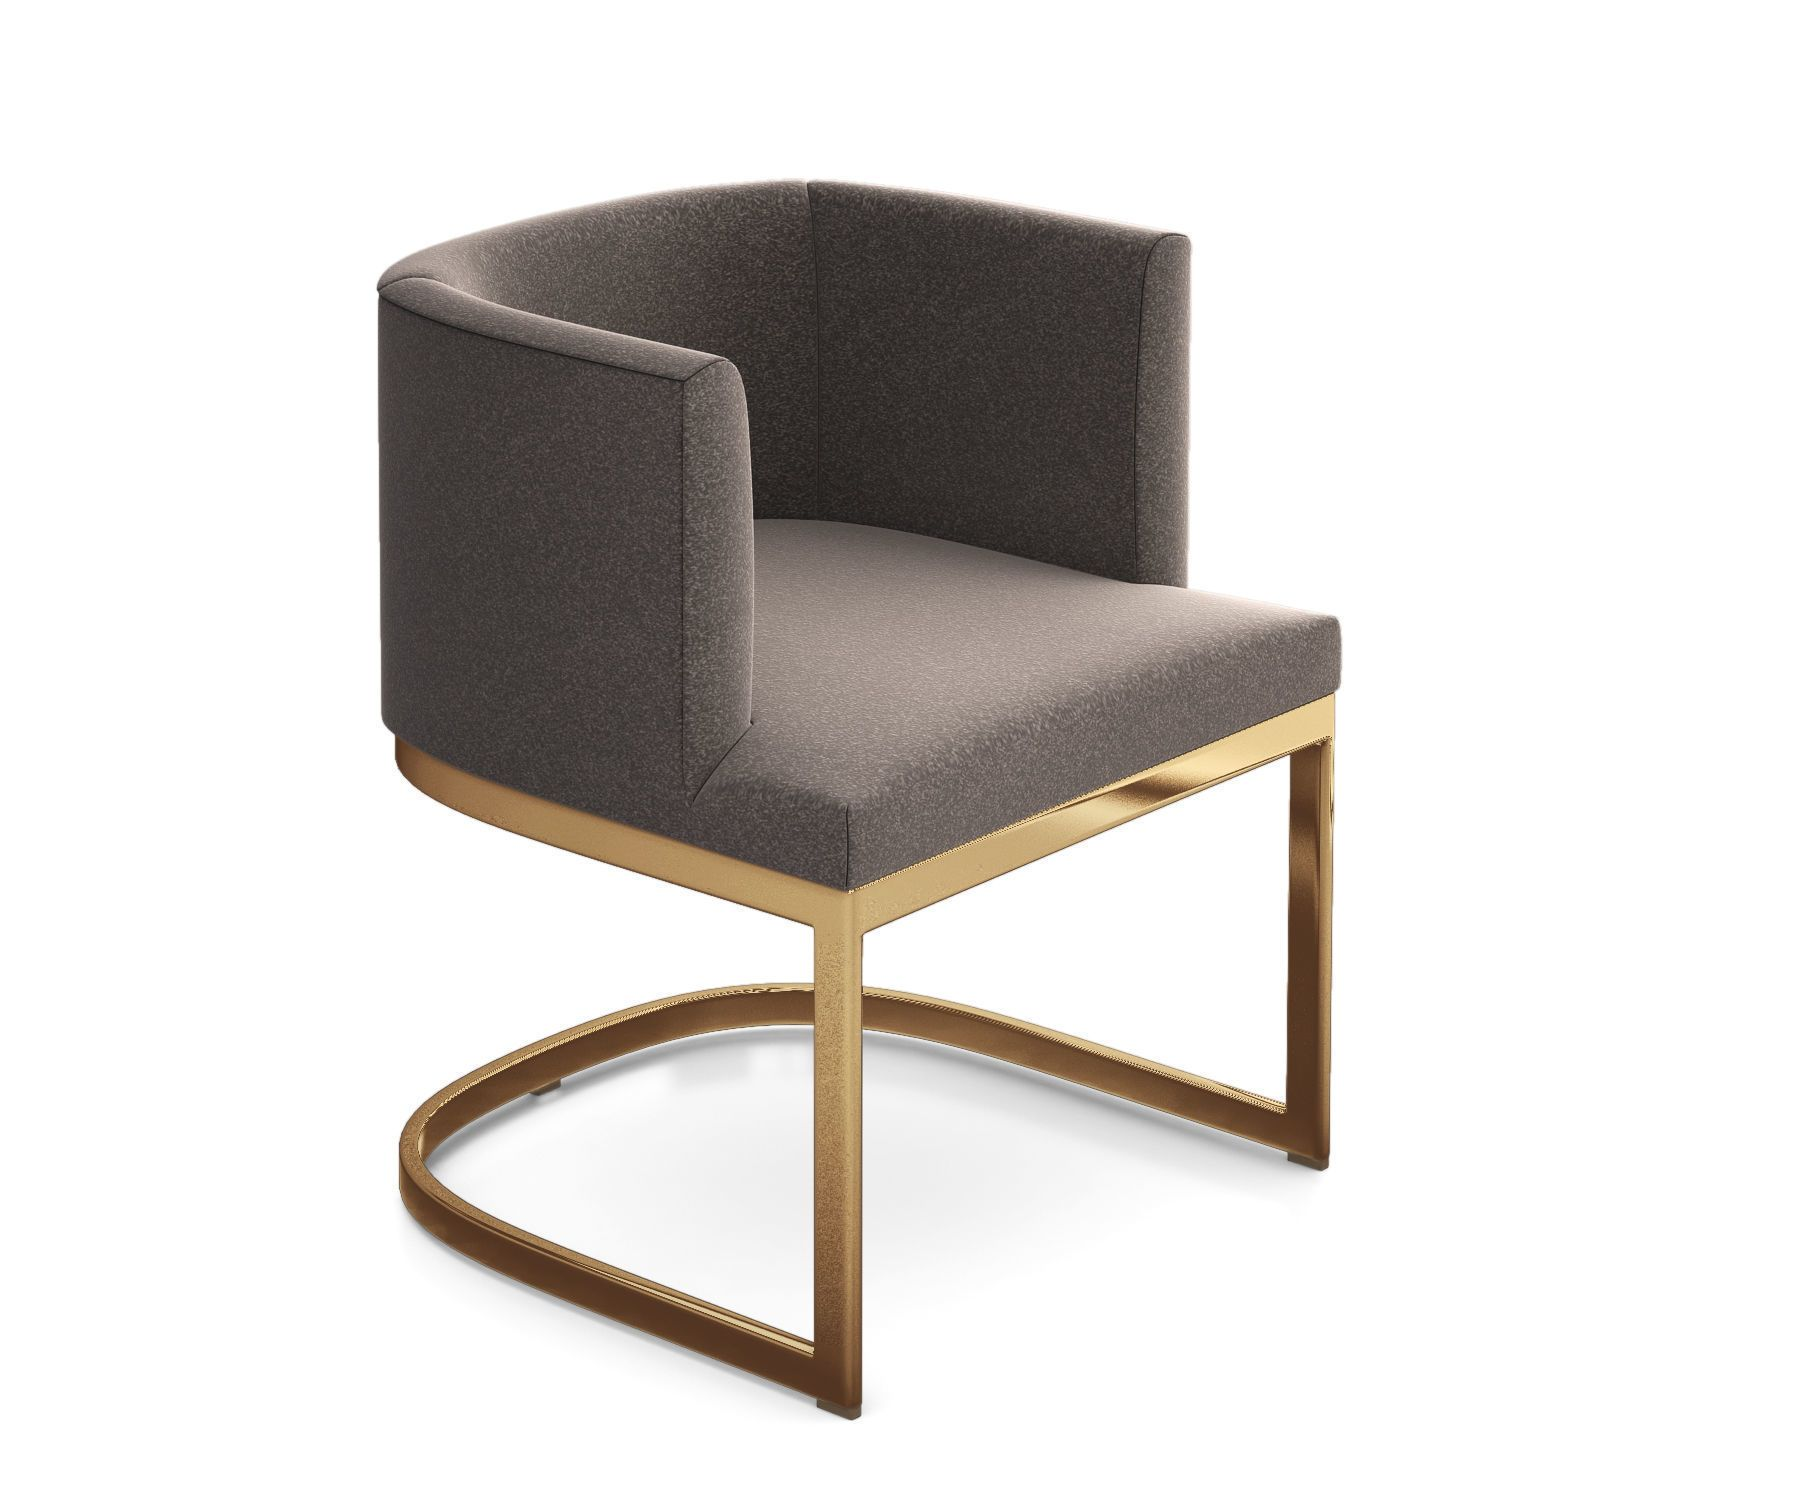 barrel back dining chair model available on turbo squid the world'sleading provider of digital models for visualization films televisionand games. image result for barrel dining chair  griffin dining room